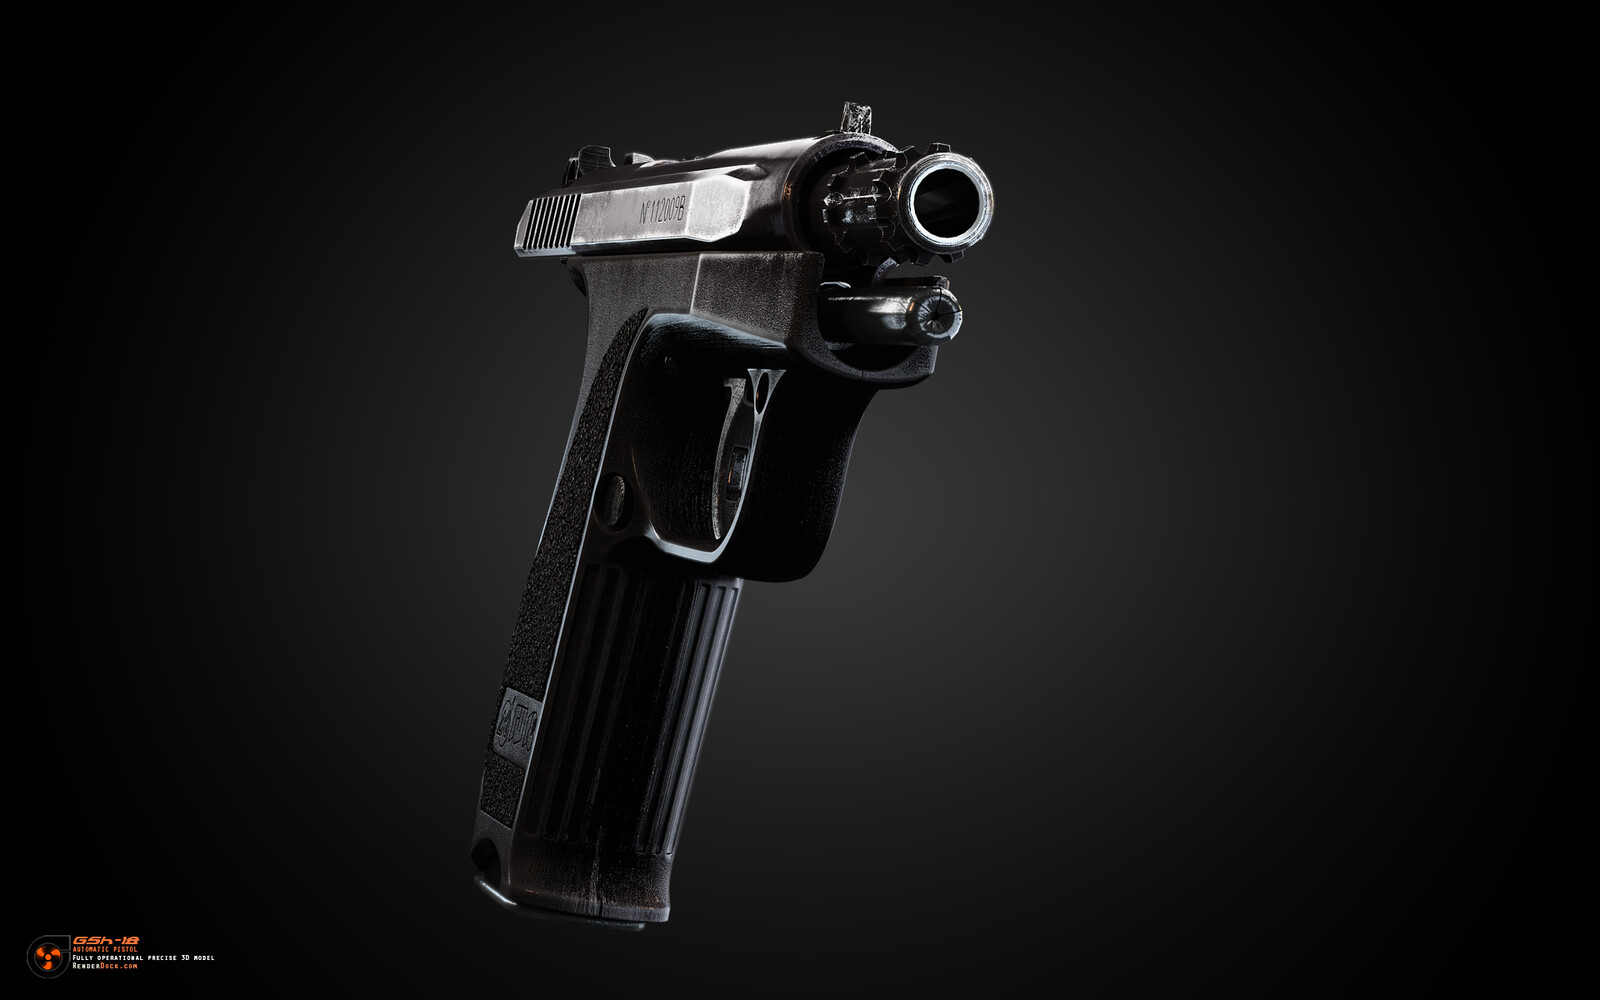 The GSh-18 is a rotating-barrel, short recoil, locked-breech pistol with 10 locking lugs spaced equally around the barrel, the large locking surface area resulting in a strong lockup making it suitable for high-velocity ammunition loads.